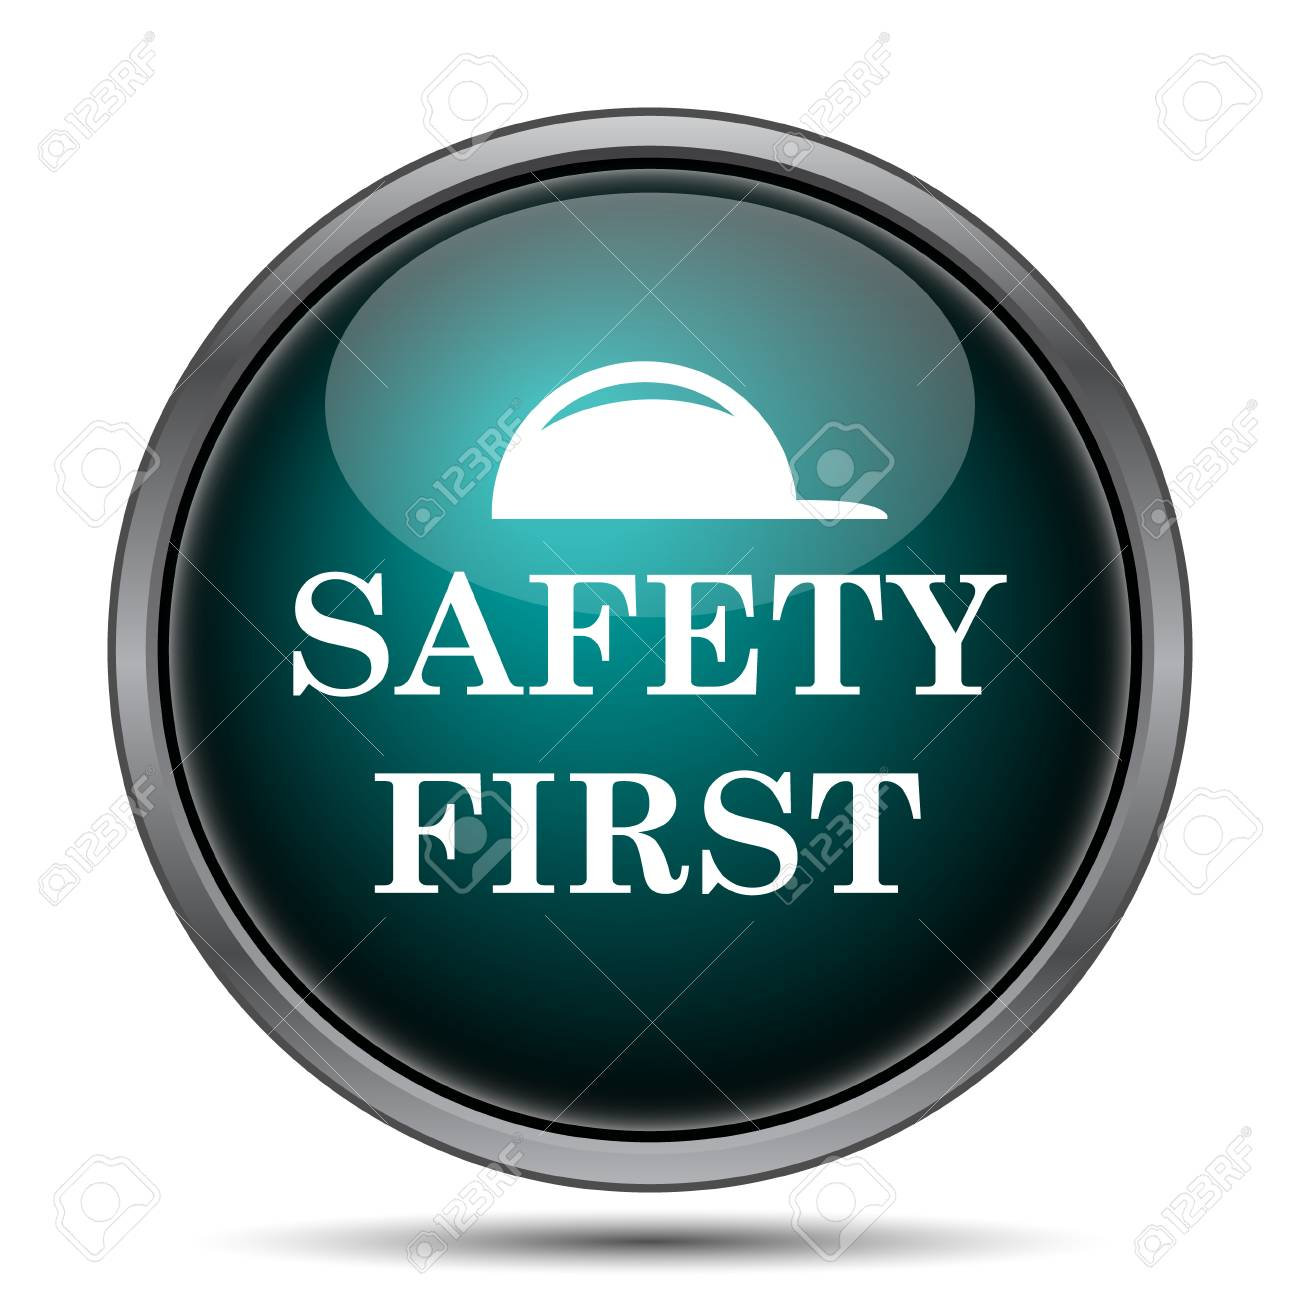 Safety First Icon Internet Button On White Background Stock Photo